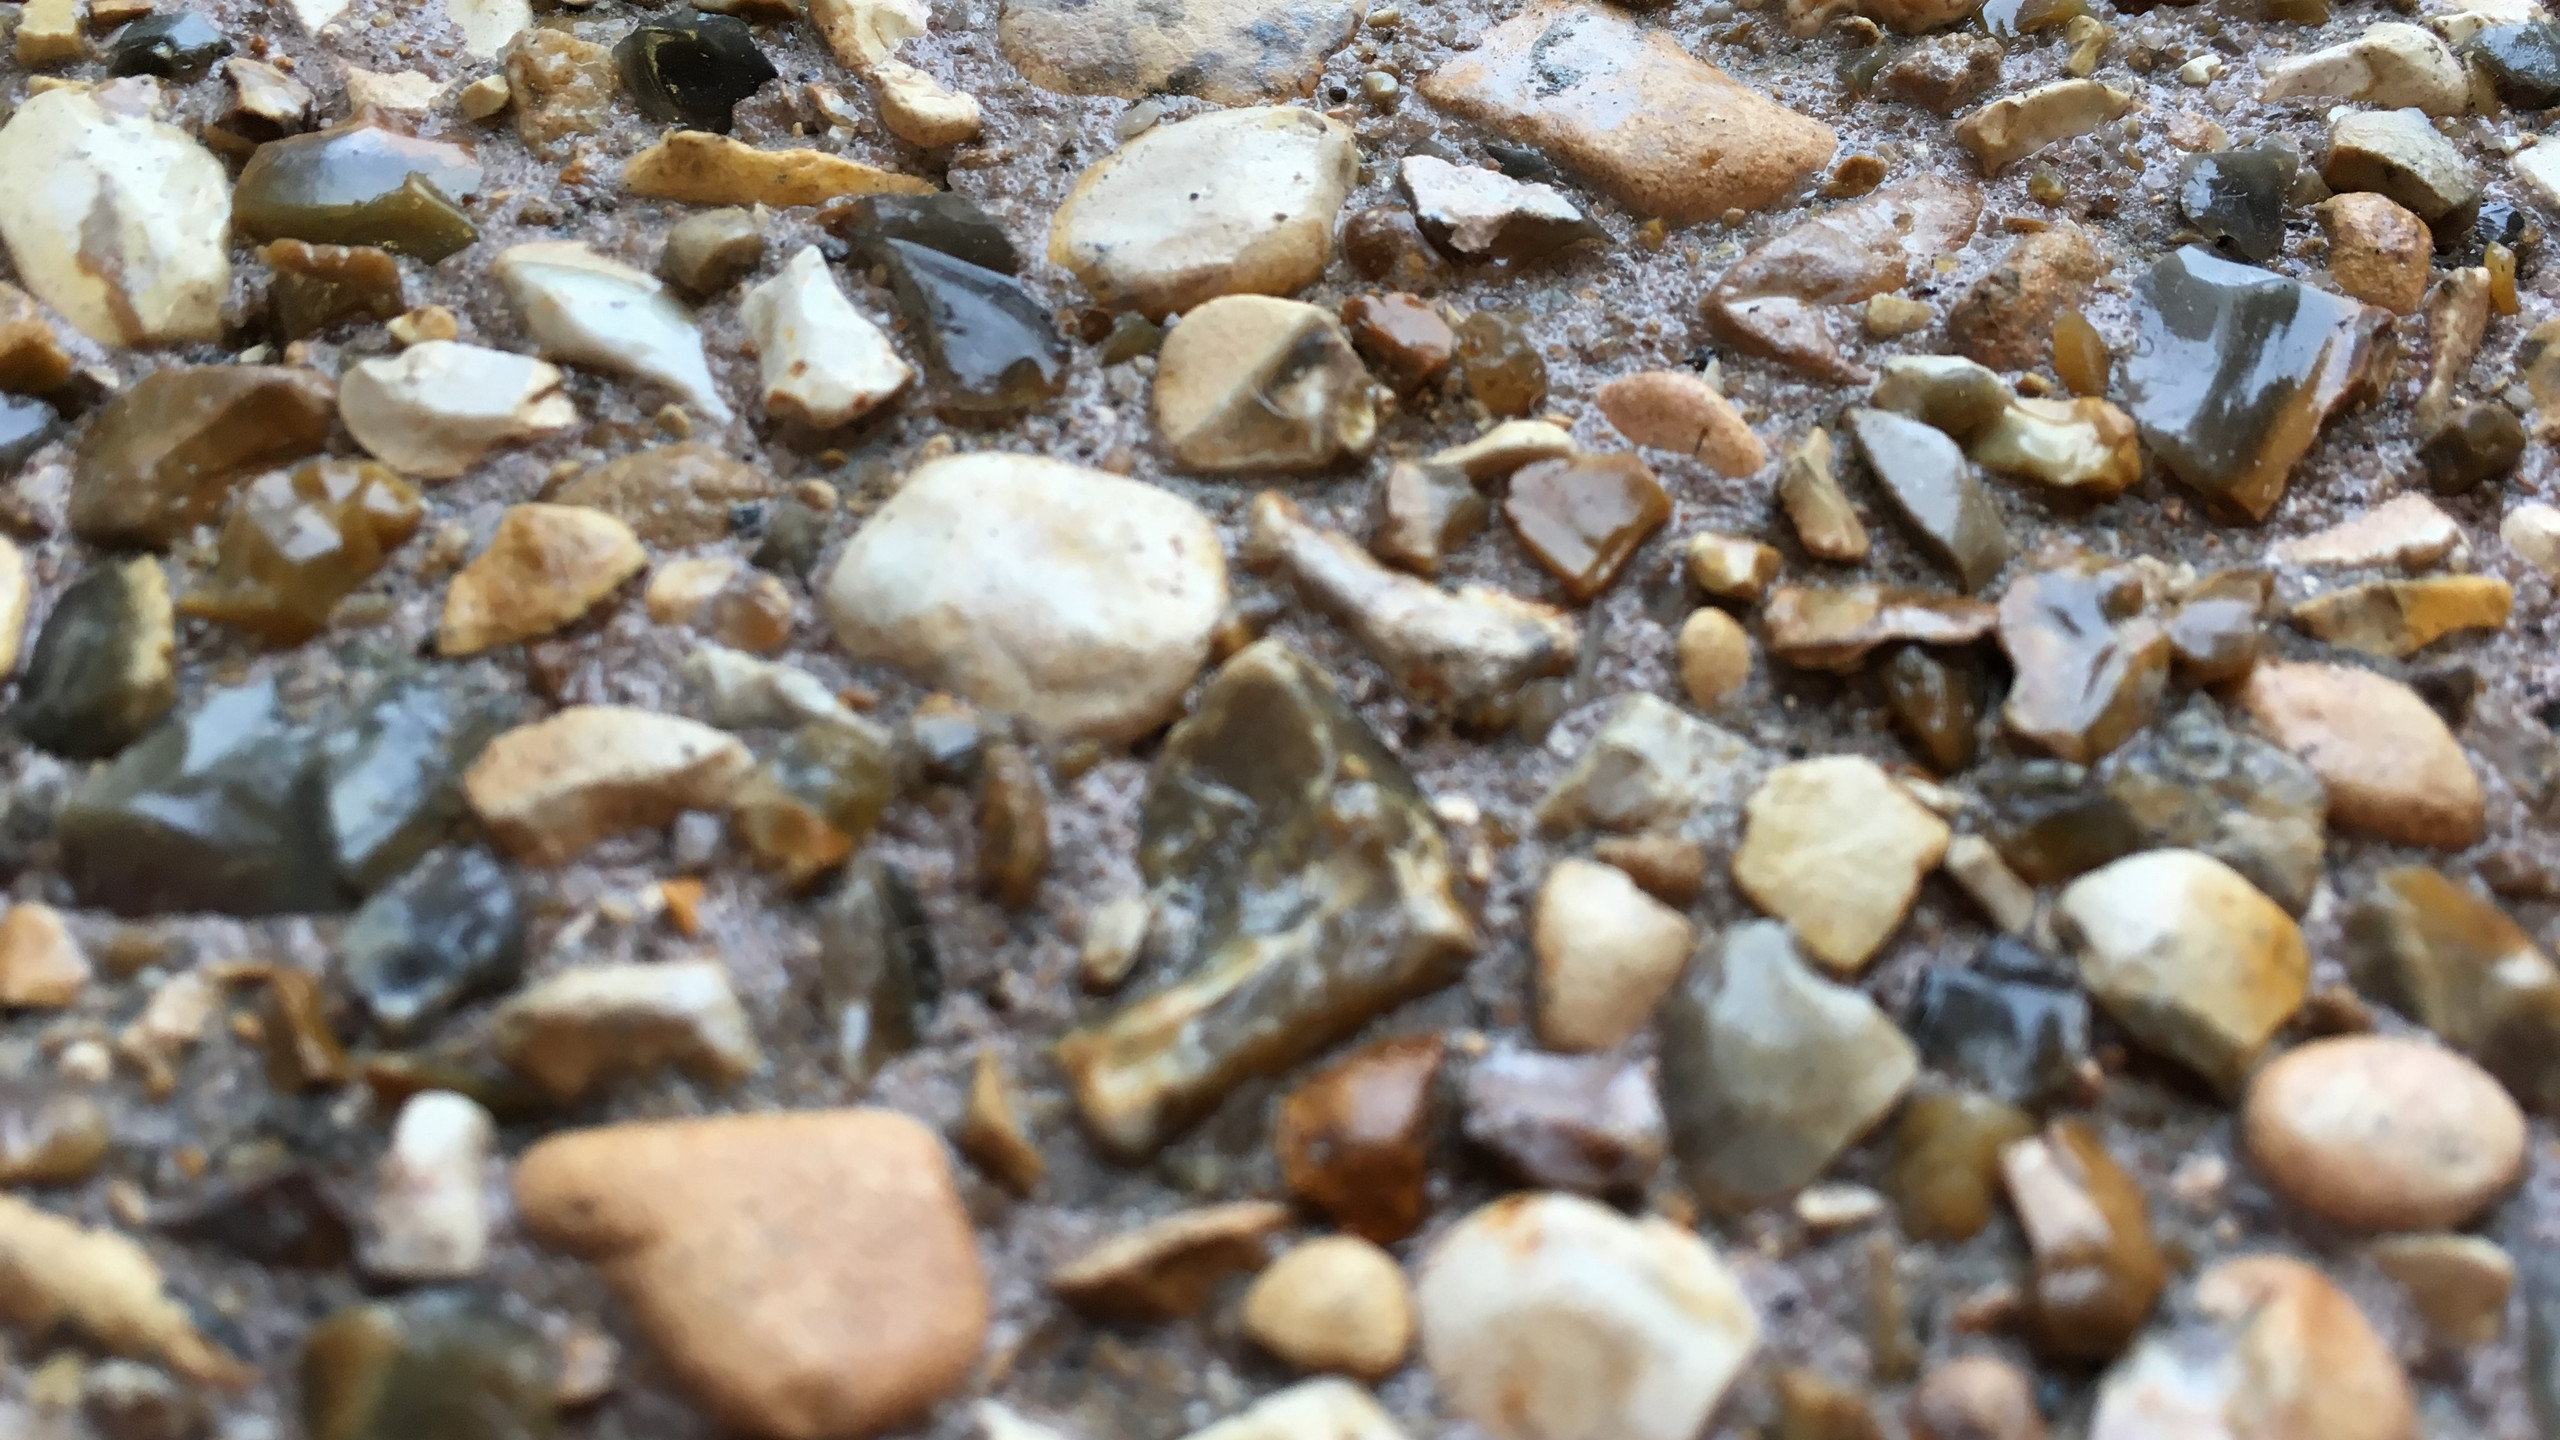 Exposed aggregate surface